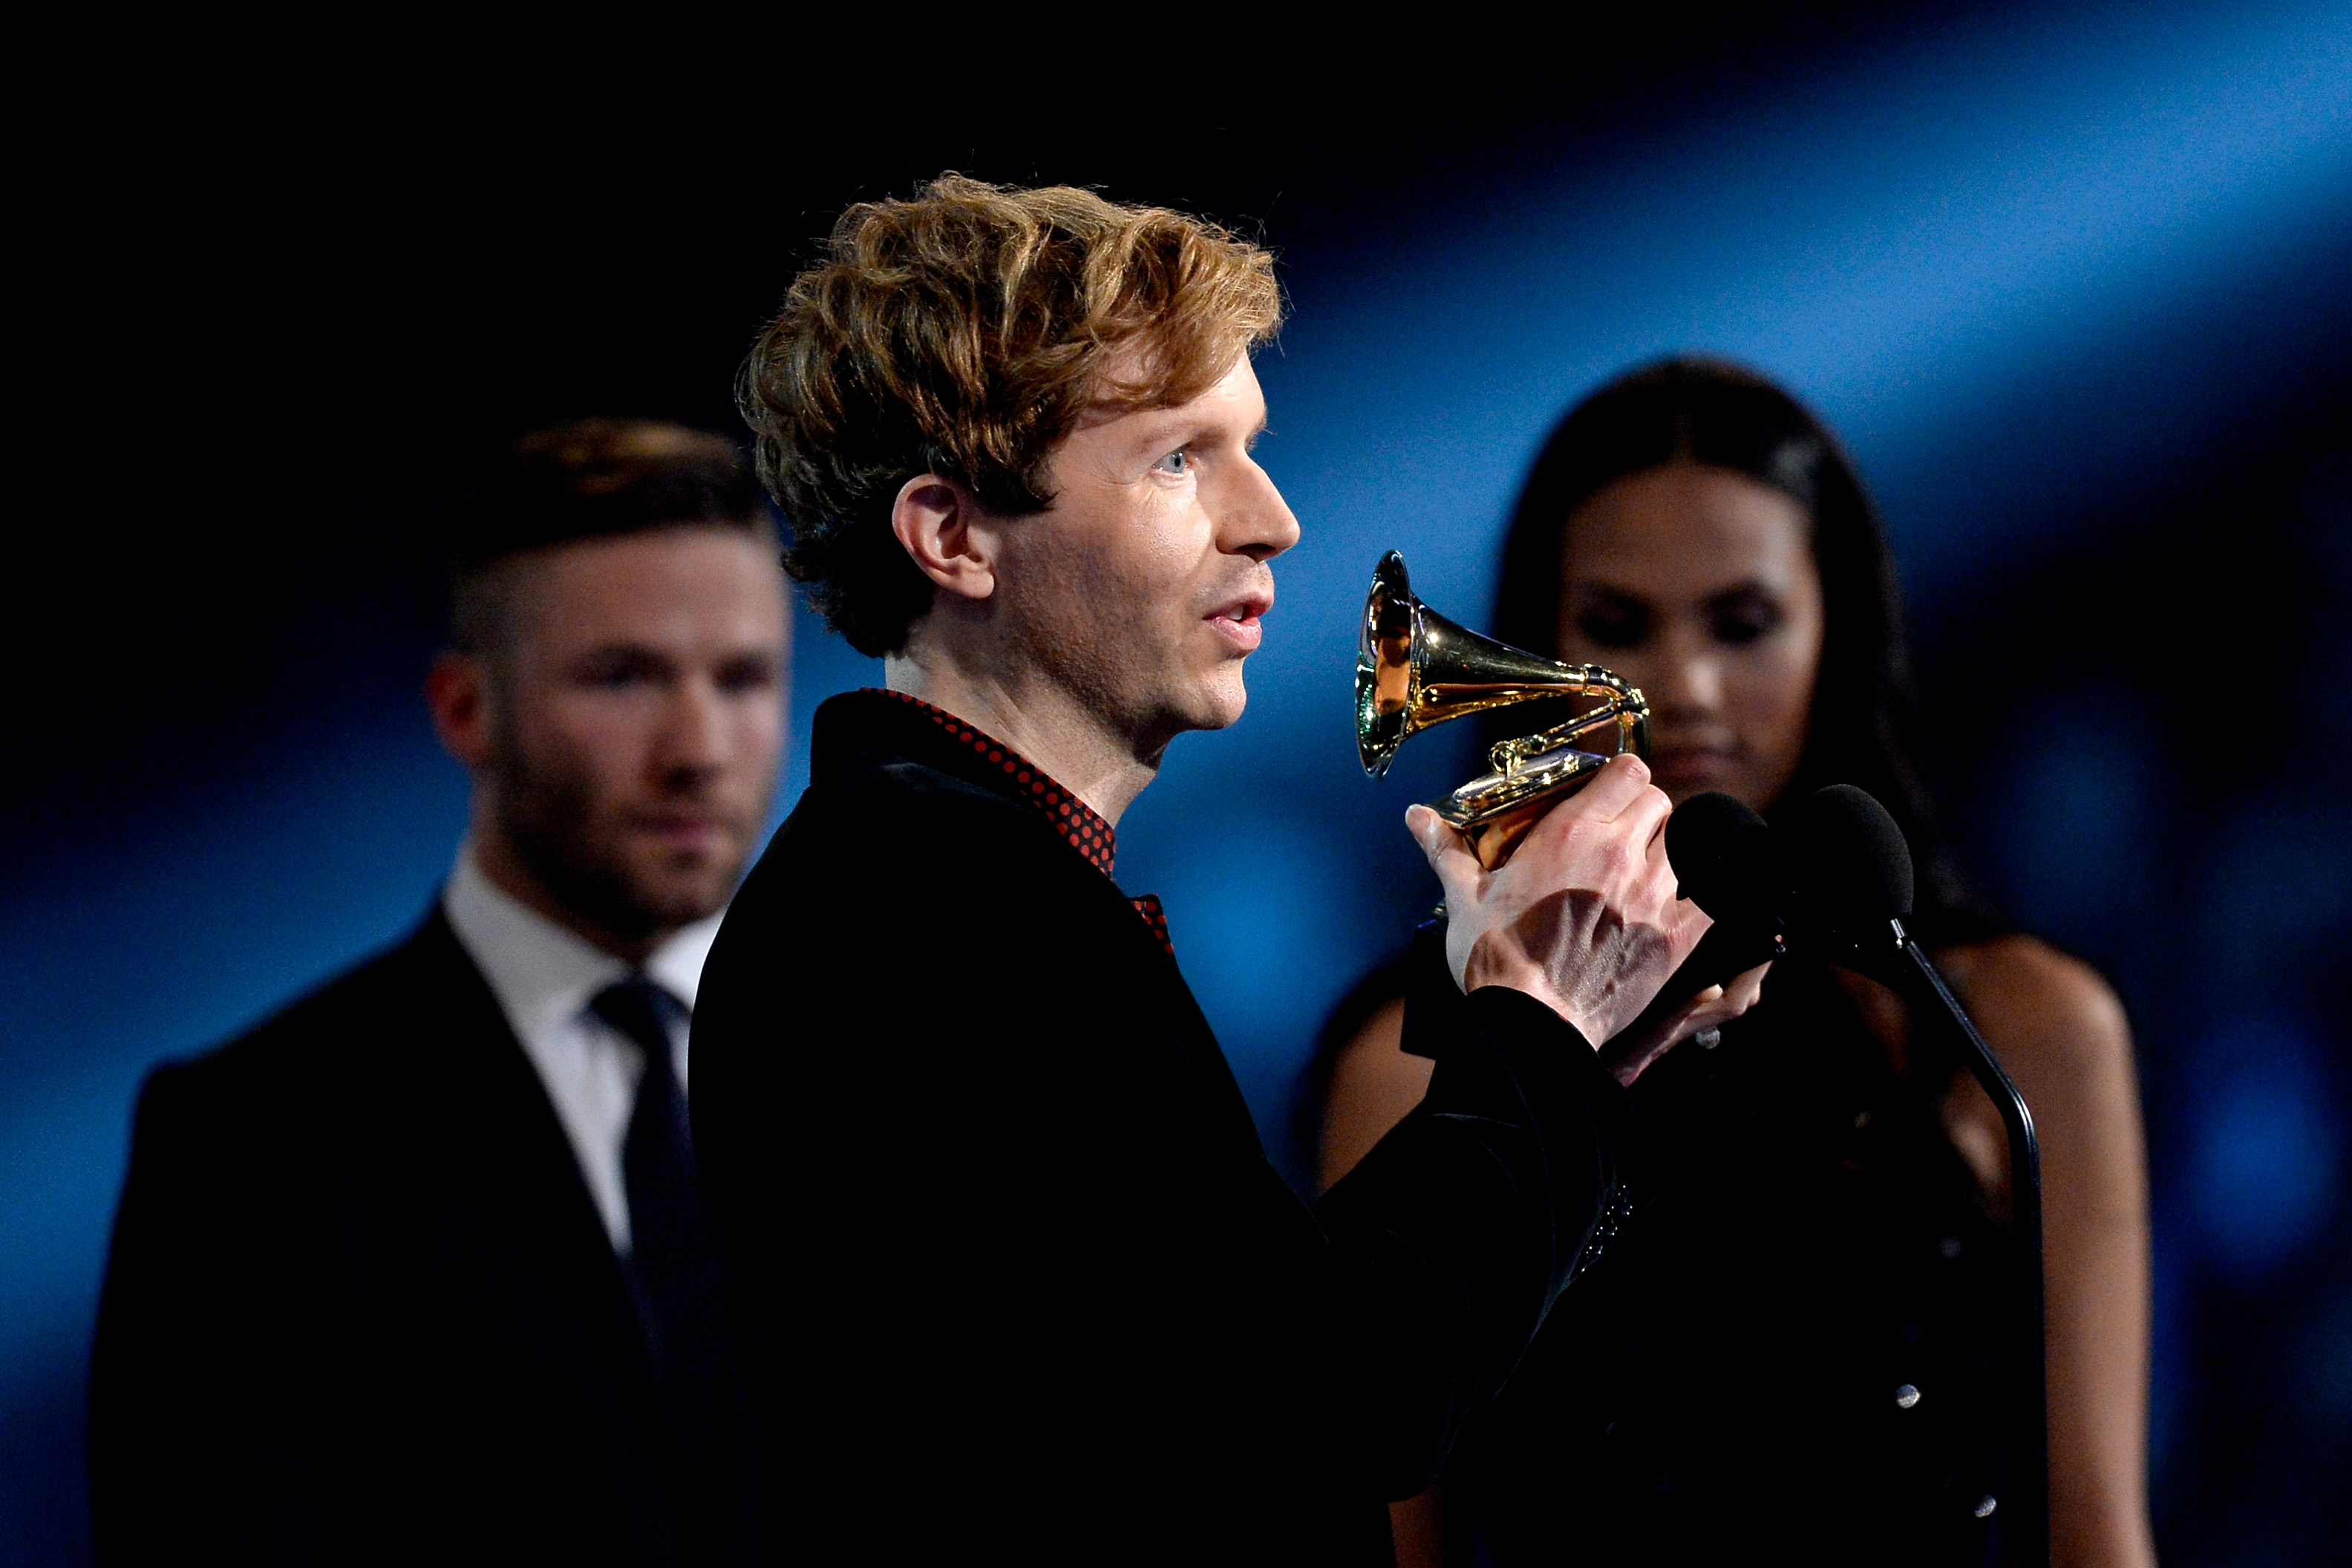 Recording artist Beck accepts the Best Rock Album award for  Morning Phase  onstage during The 57th Annual GRAMMY Awards at the at the STAPLES Center on February 8, 2015 in Los Angeles, California.